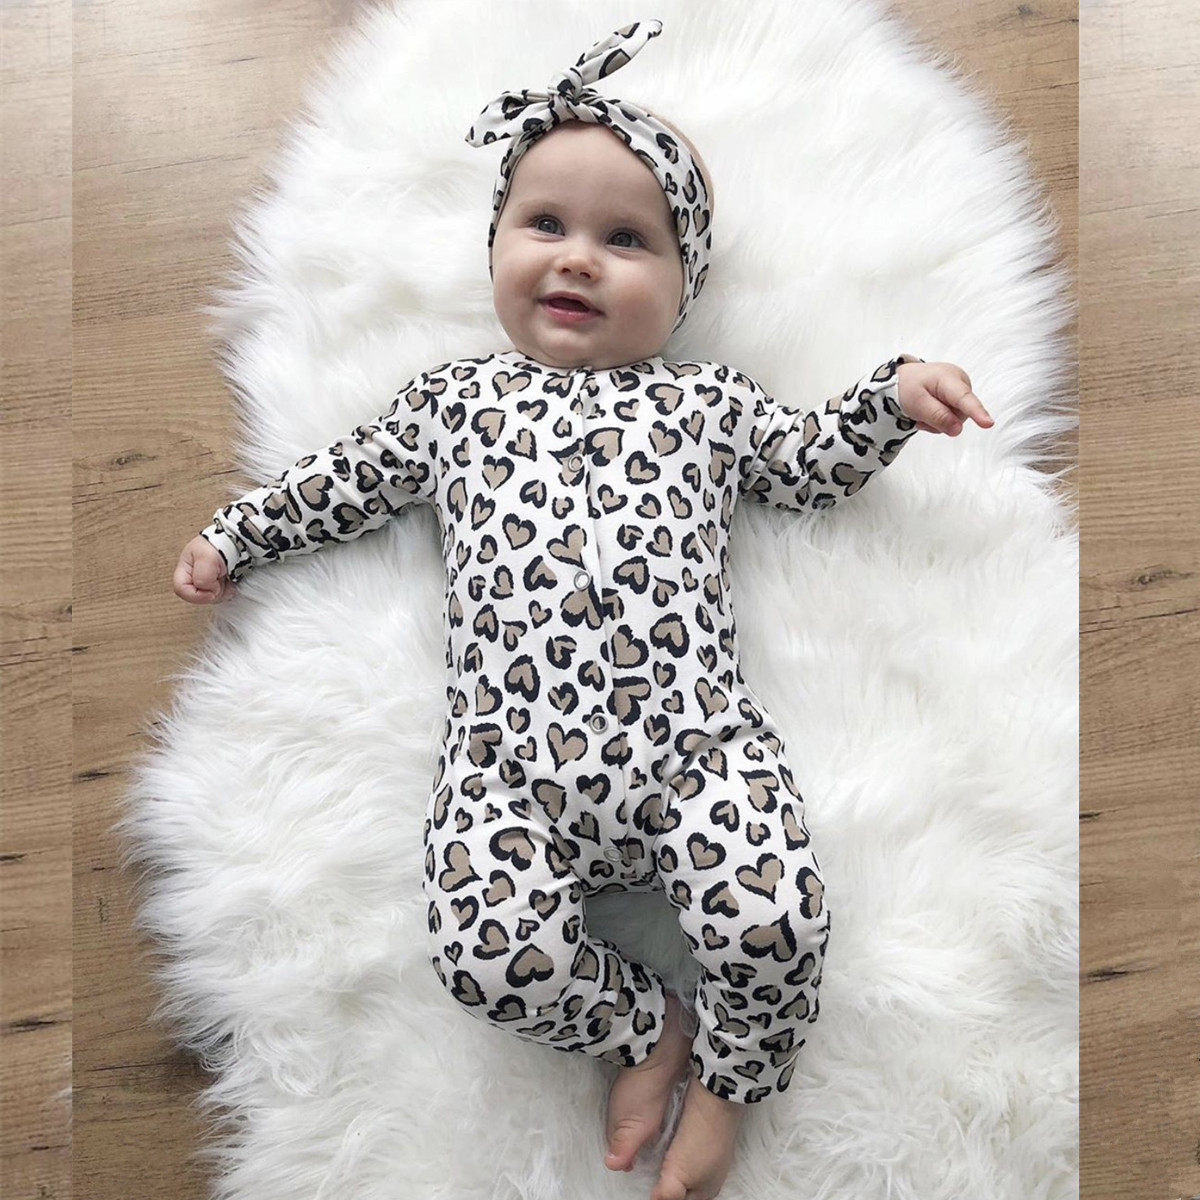 2Pcs Newborn Baby Girls Clothes Set Cotton Hearts Print Infant Long Sleeve Jumpsuit+Headband Toddler Girls Clothing(China)